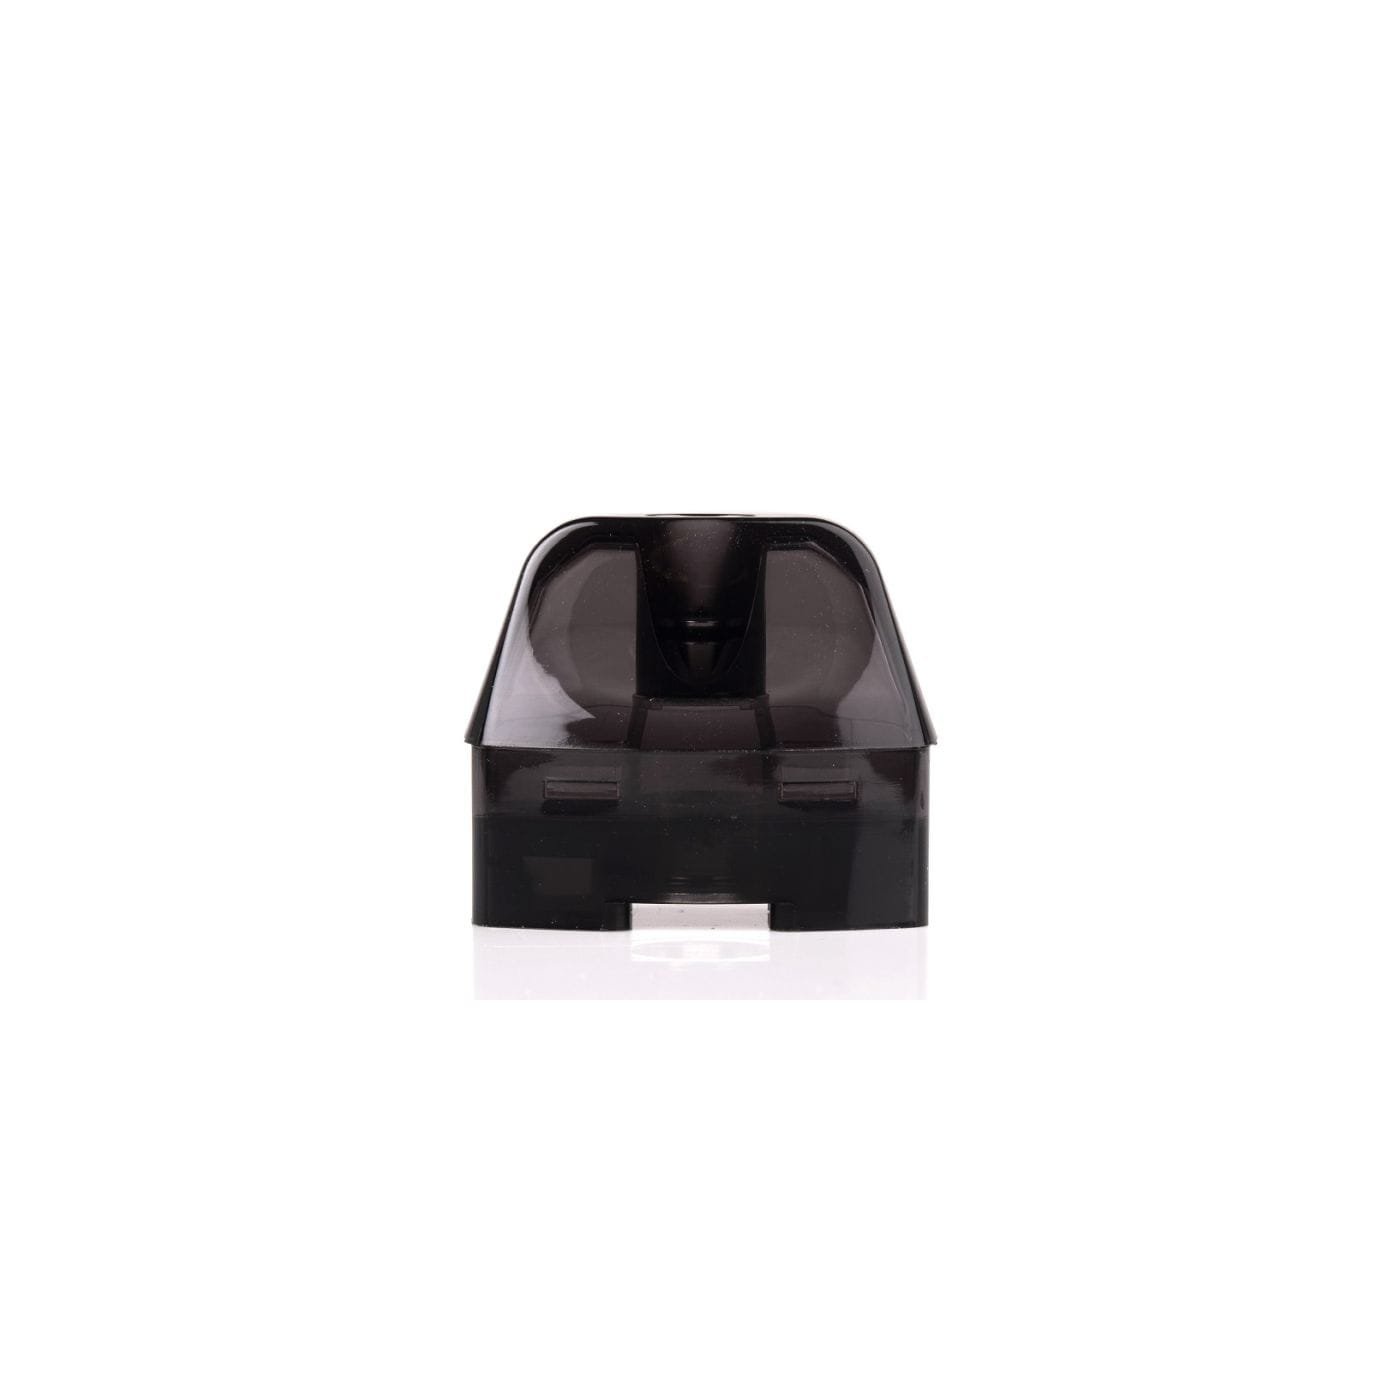 VooPoo Find S Trio Replacement Pods - 4 Pack